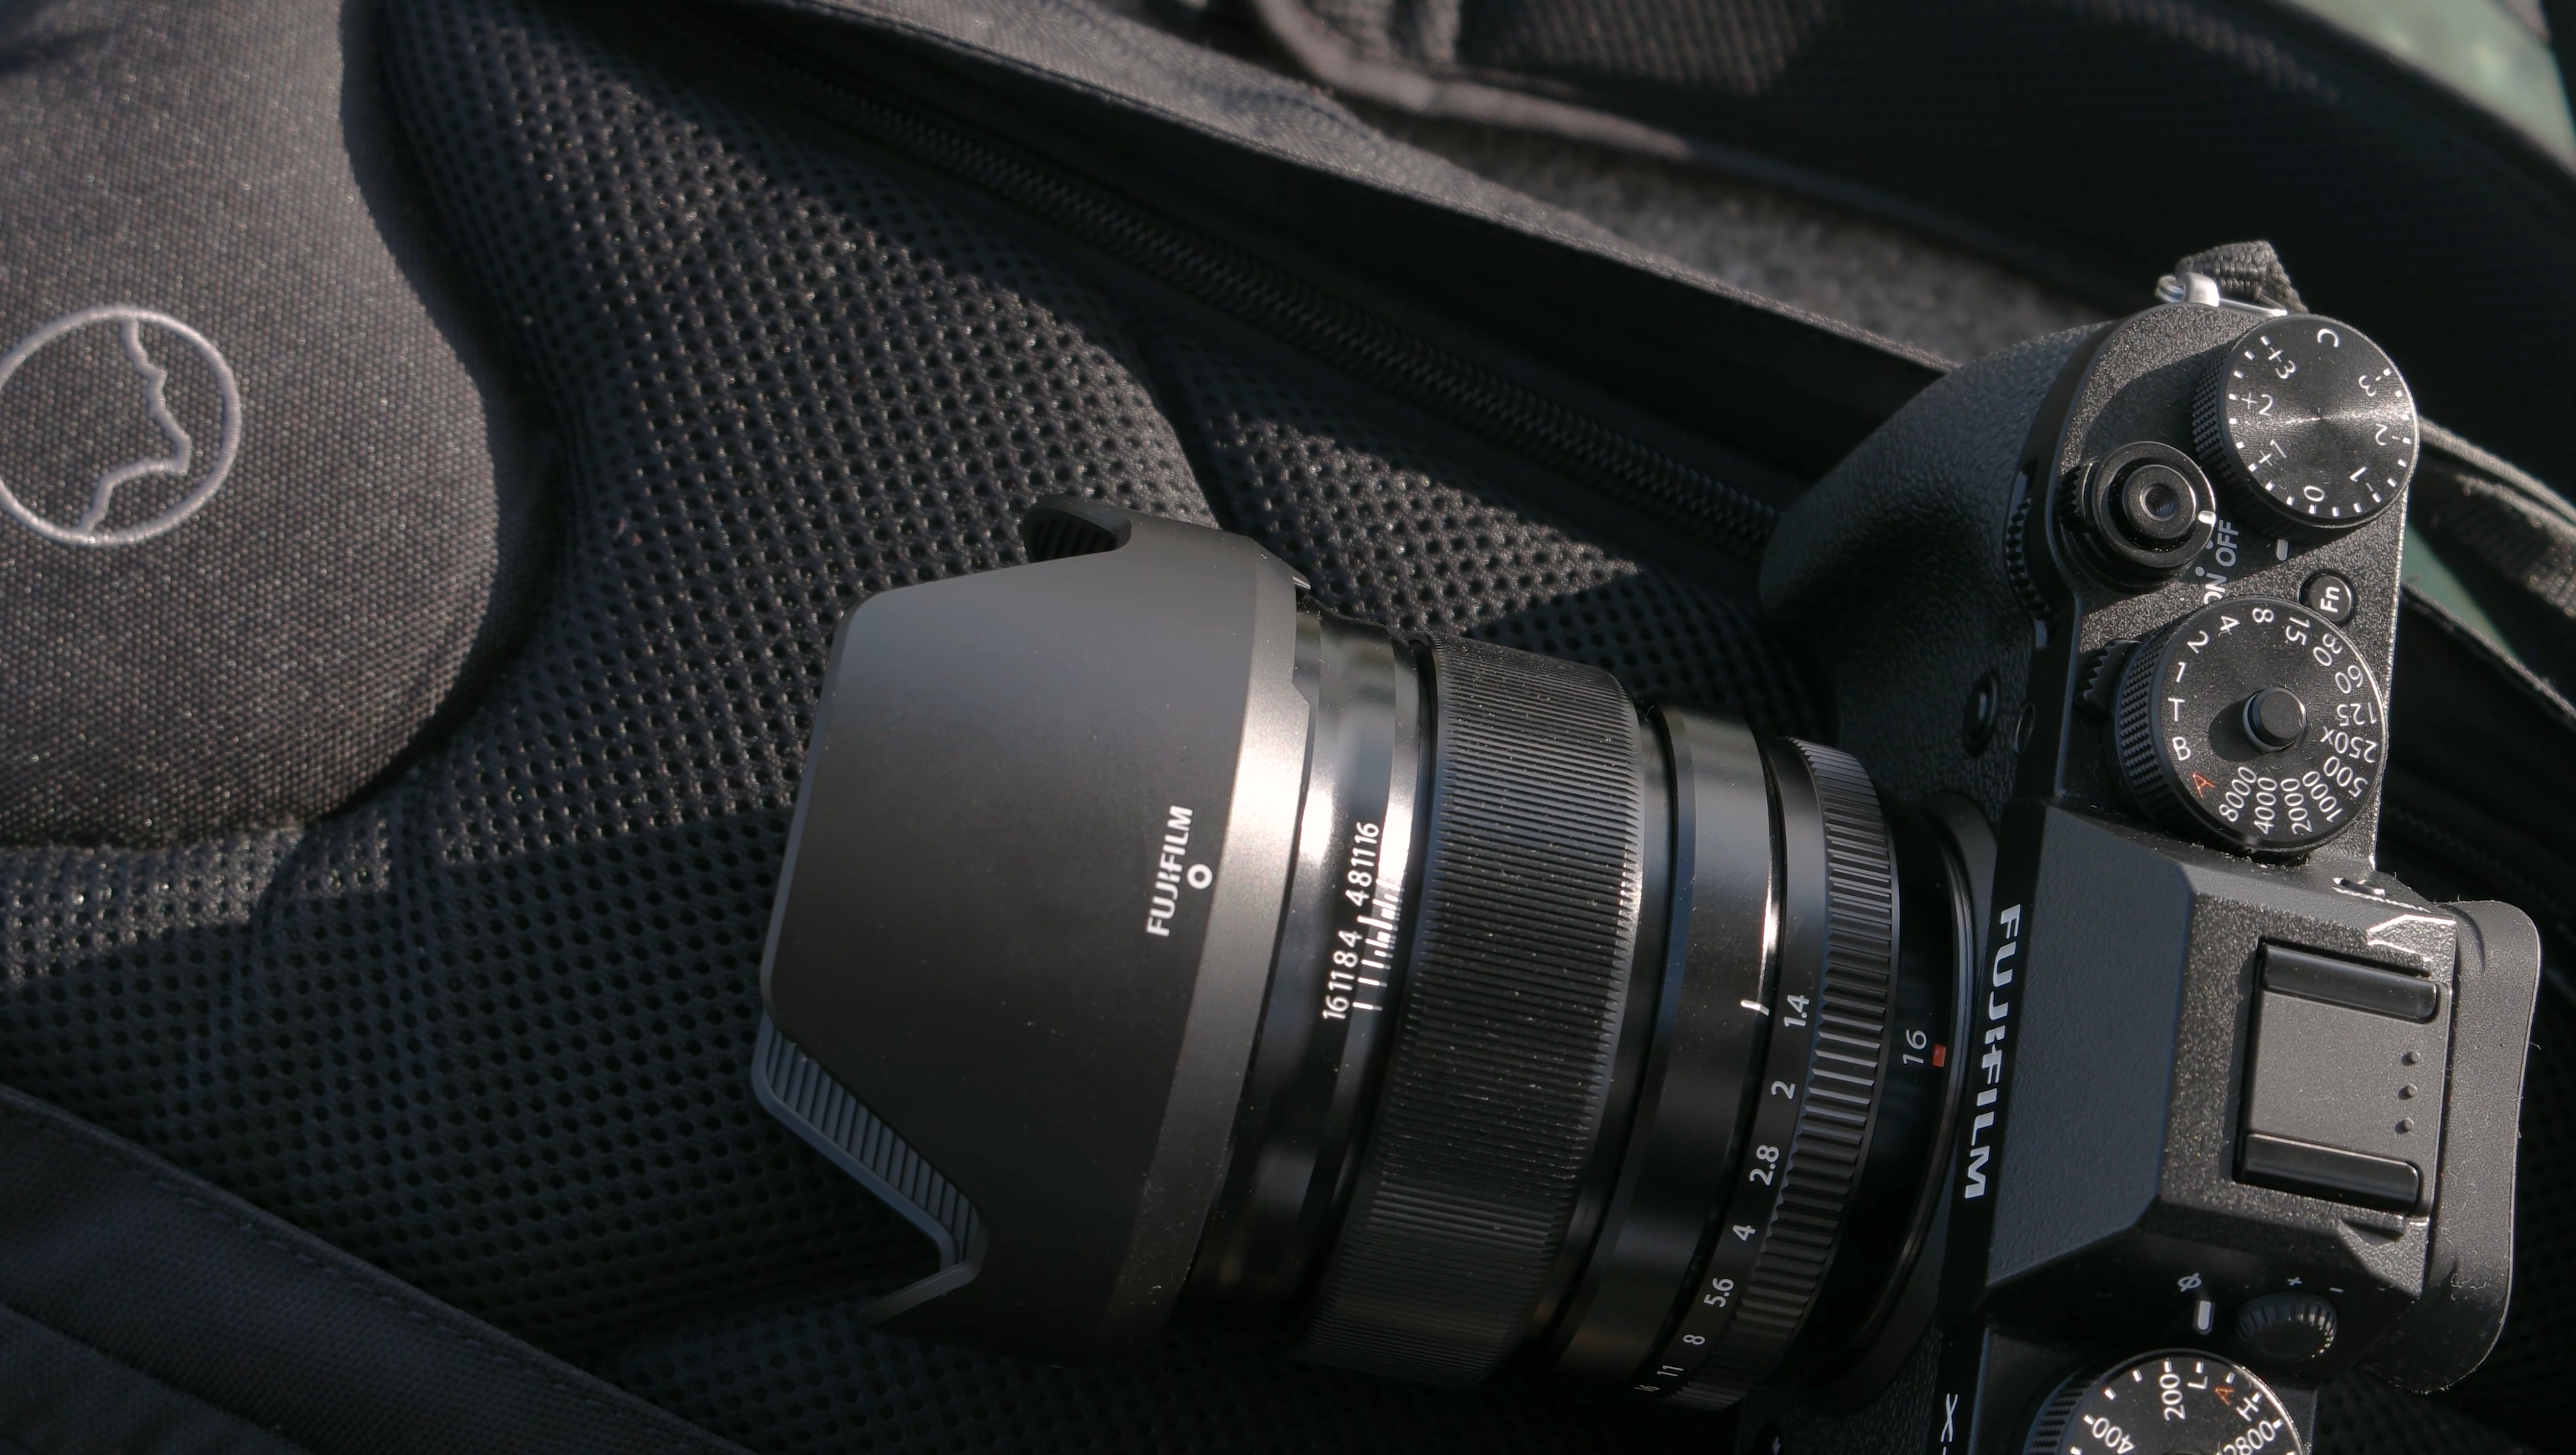 Fujinon 16mm 1.4 REVIEW